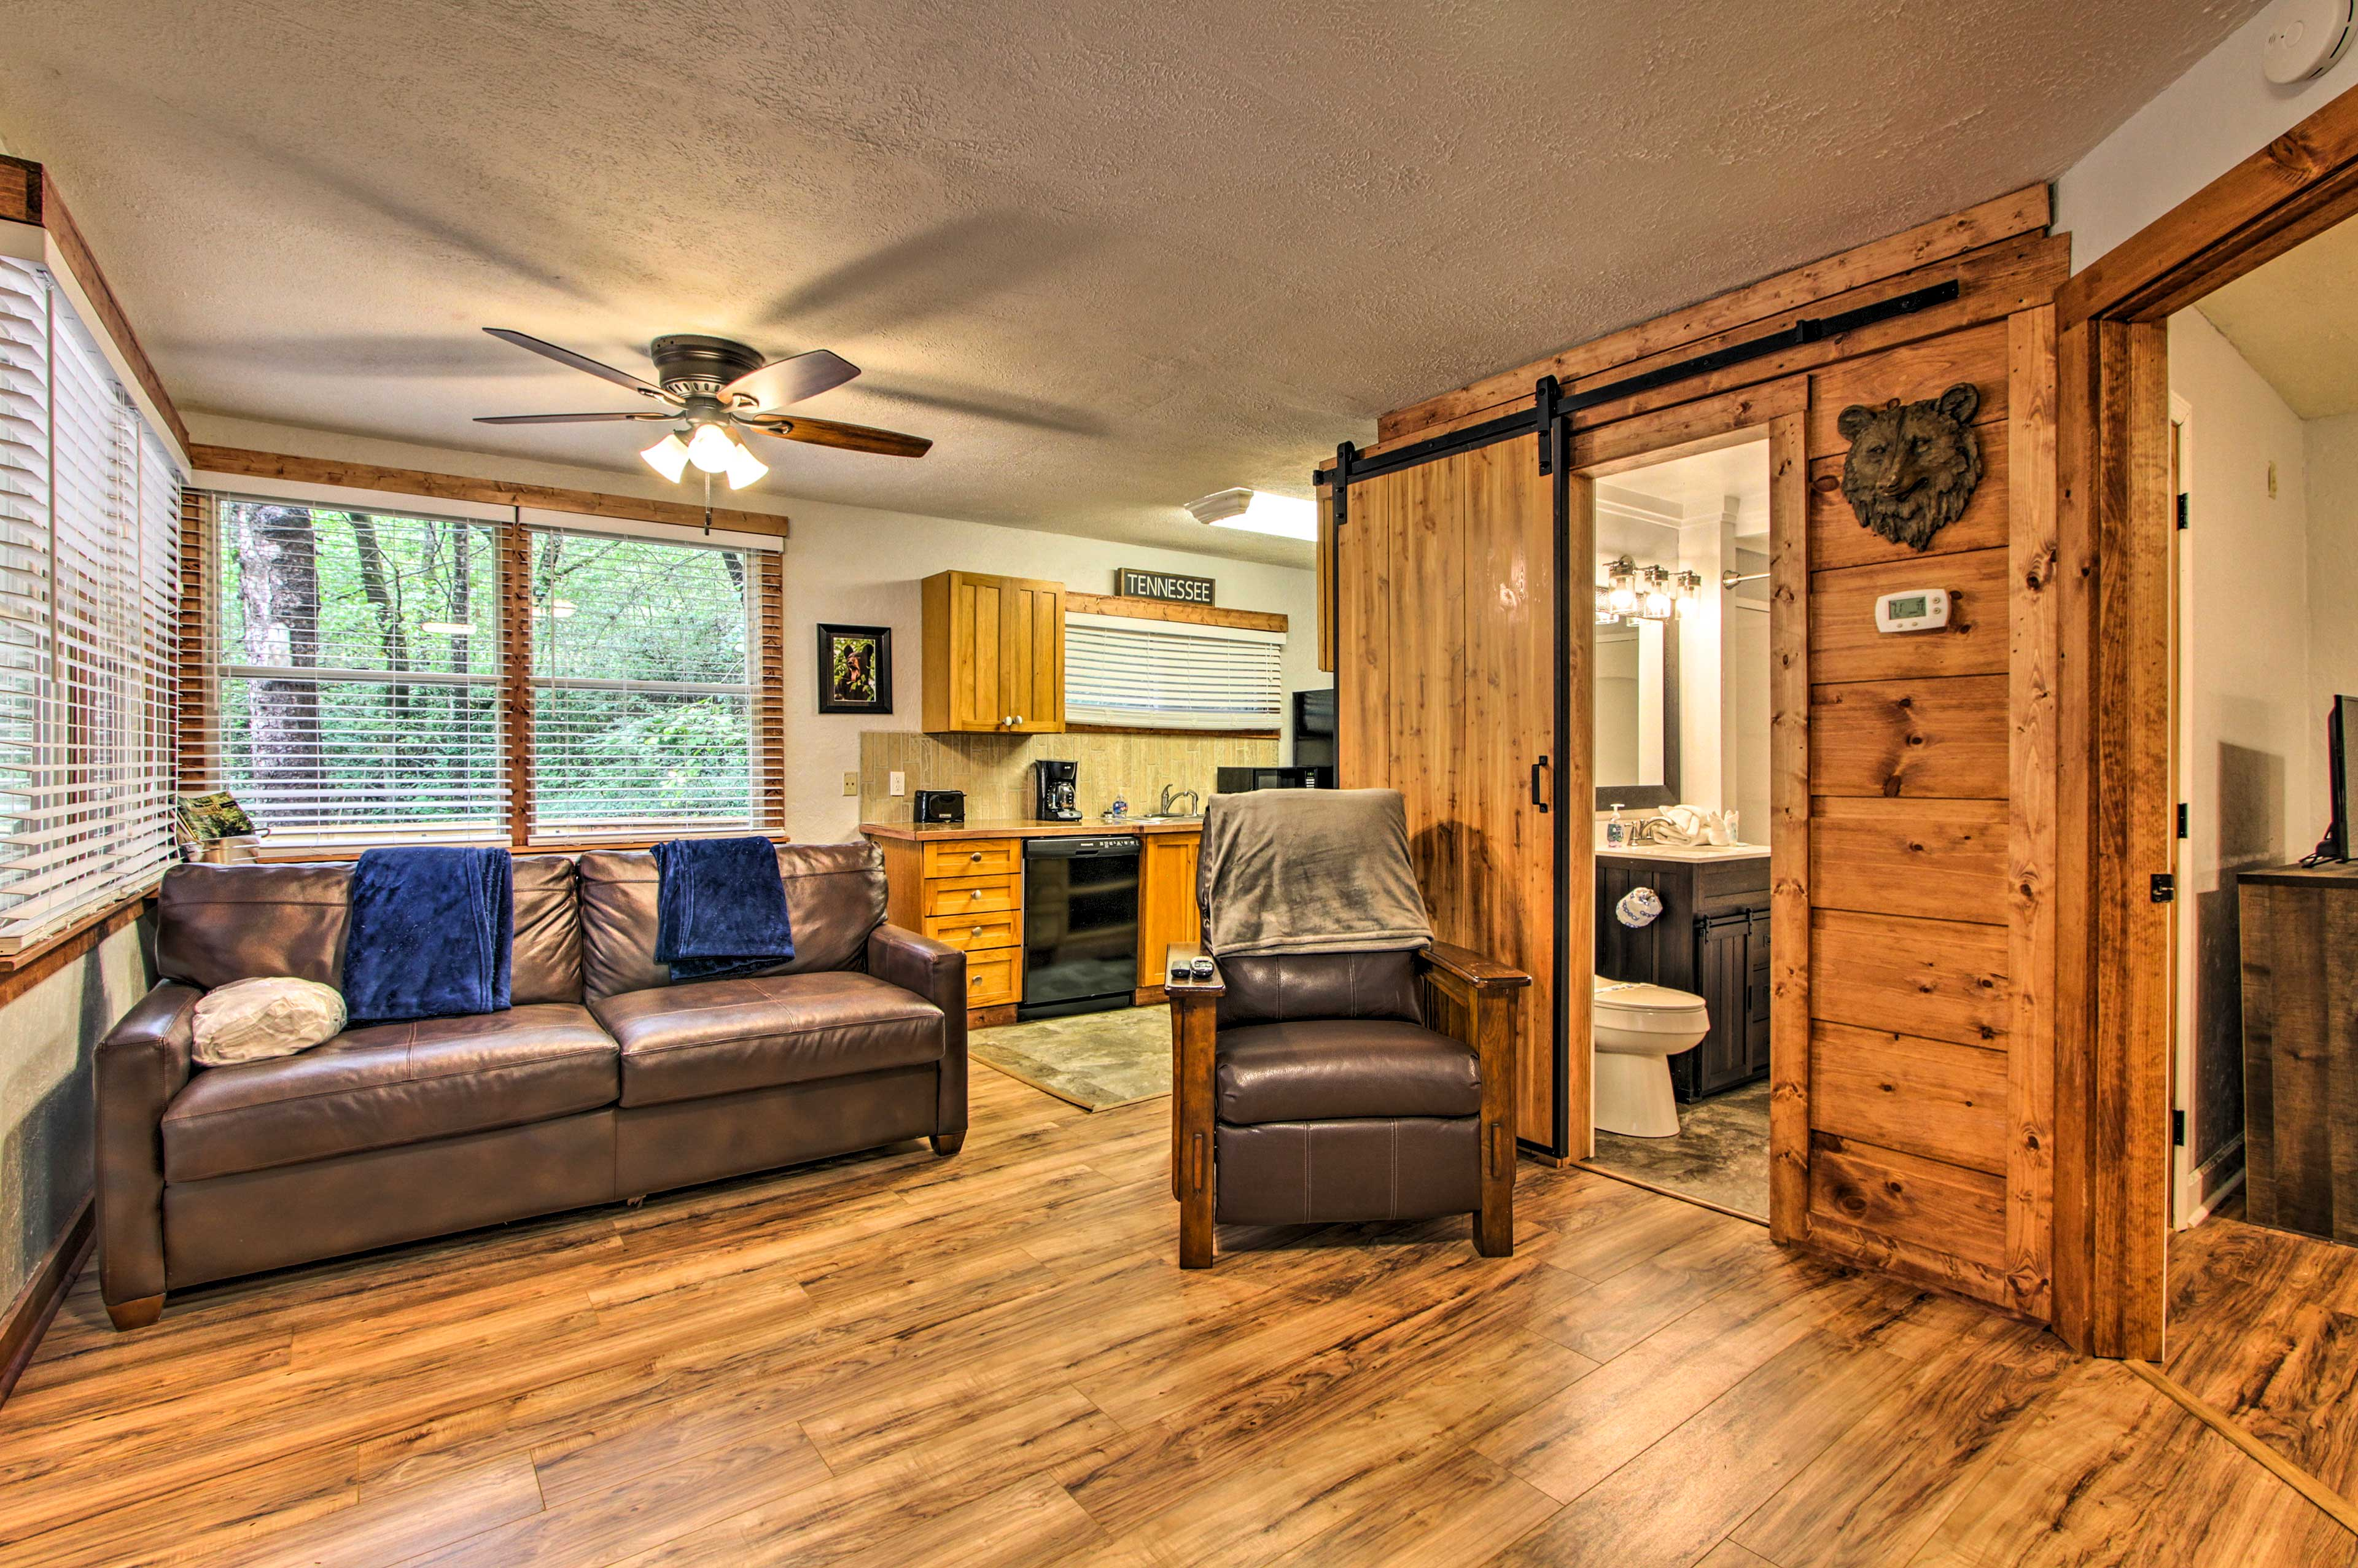 Enjoy a relaxing getaway to this 2-bedroom, 1-bath vacation rental cabin.